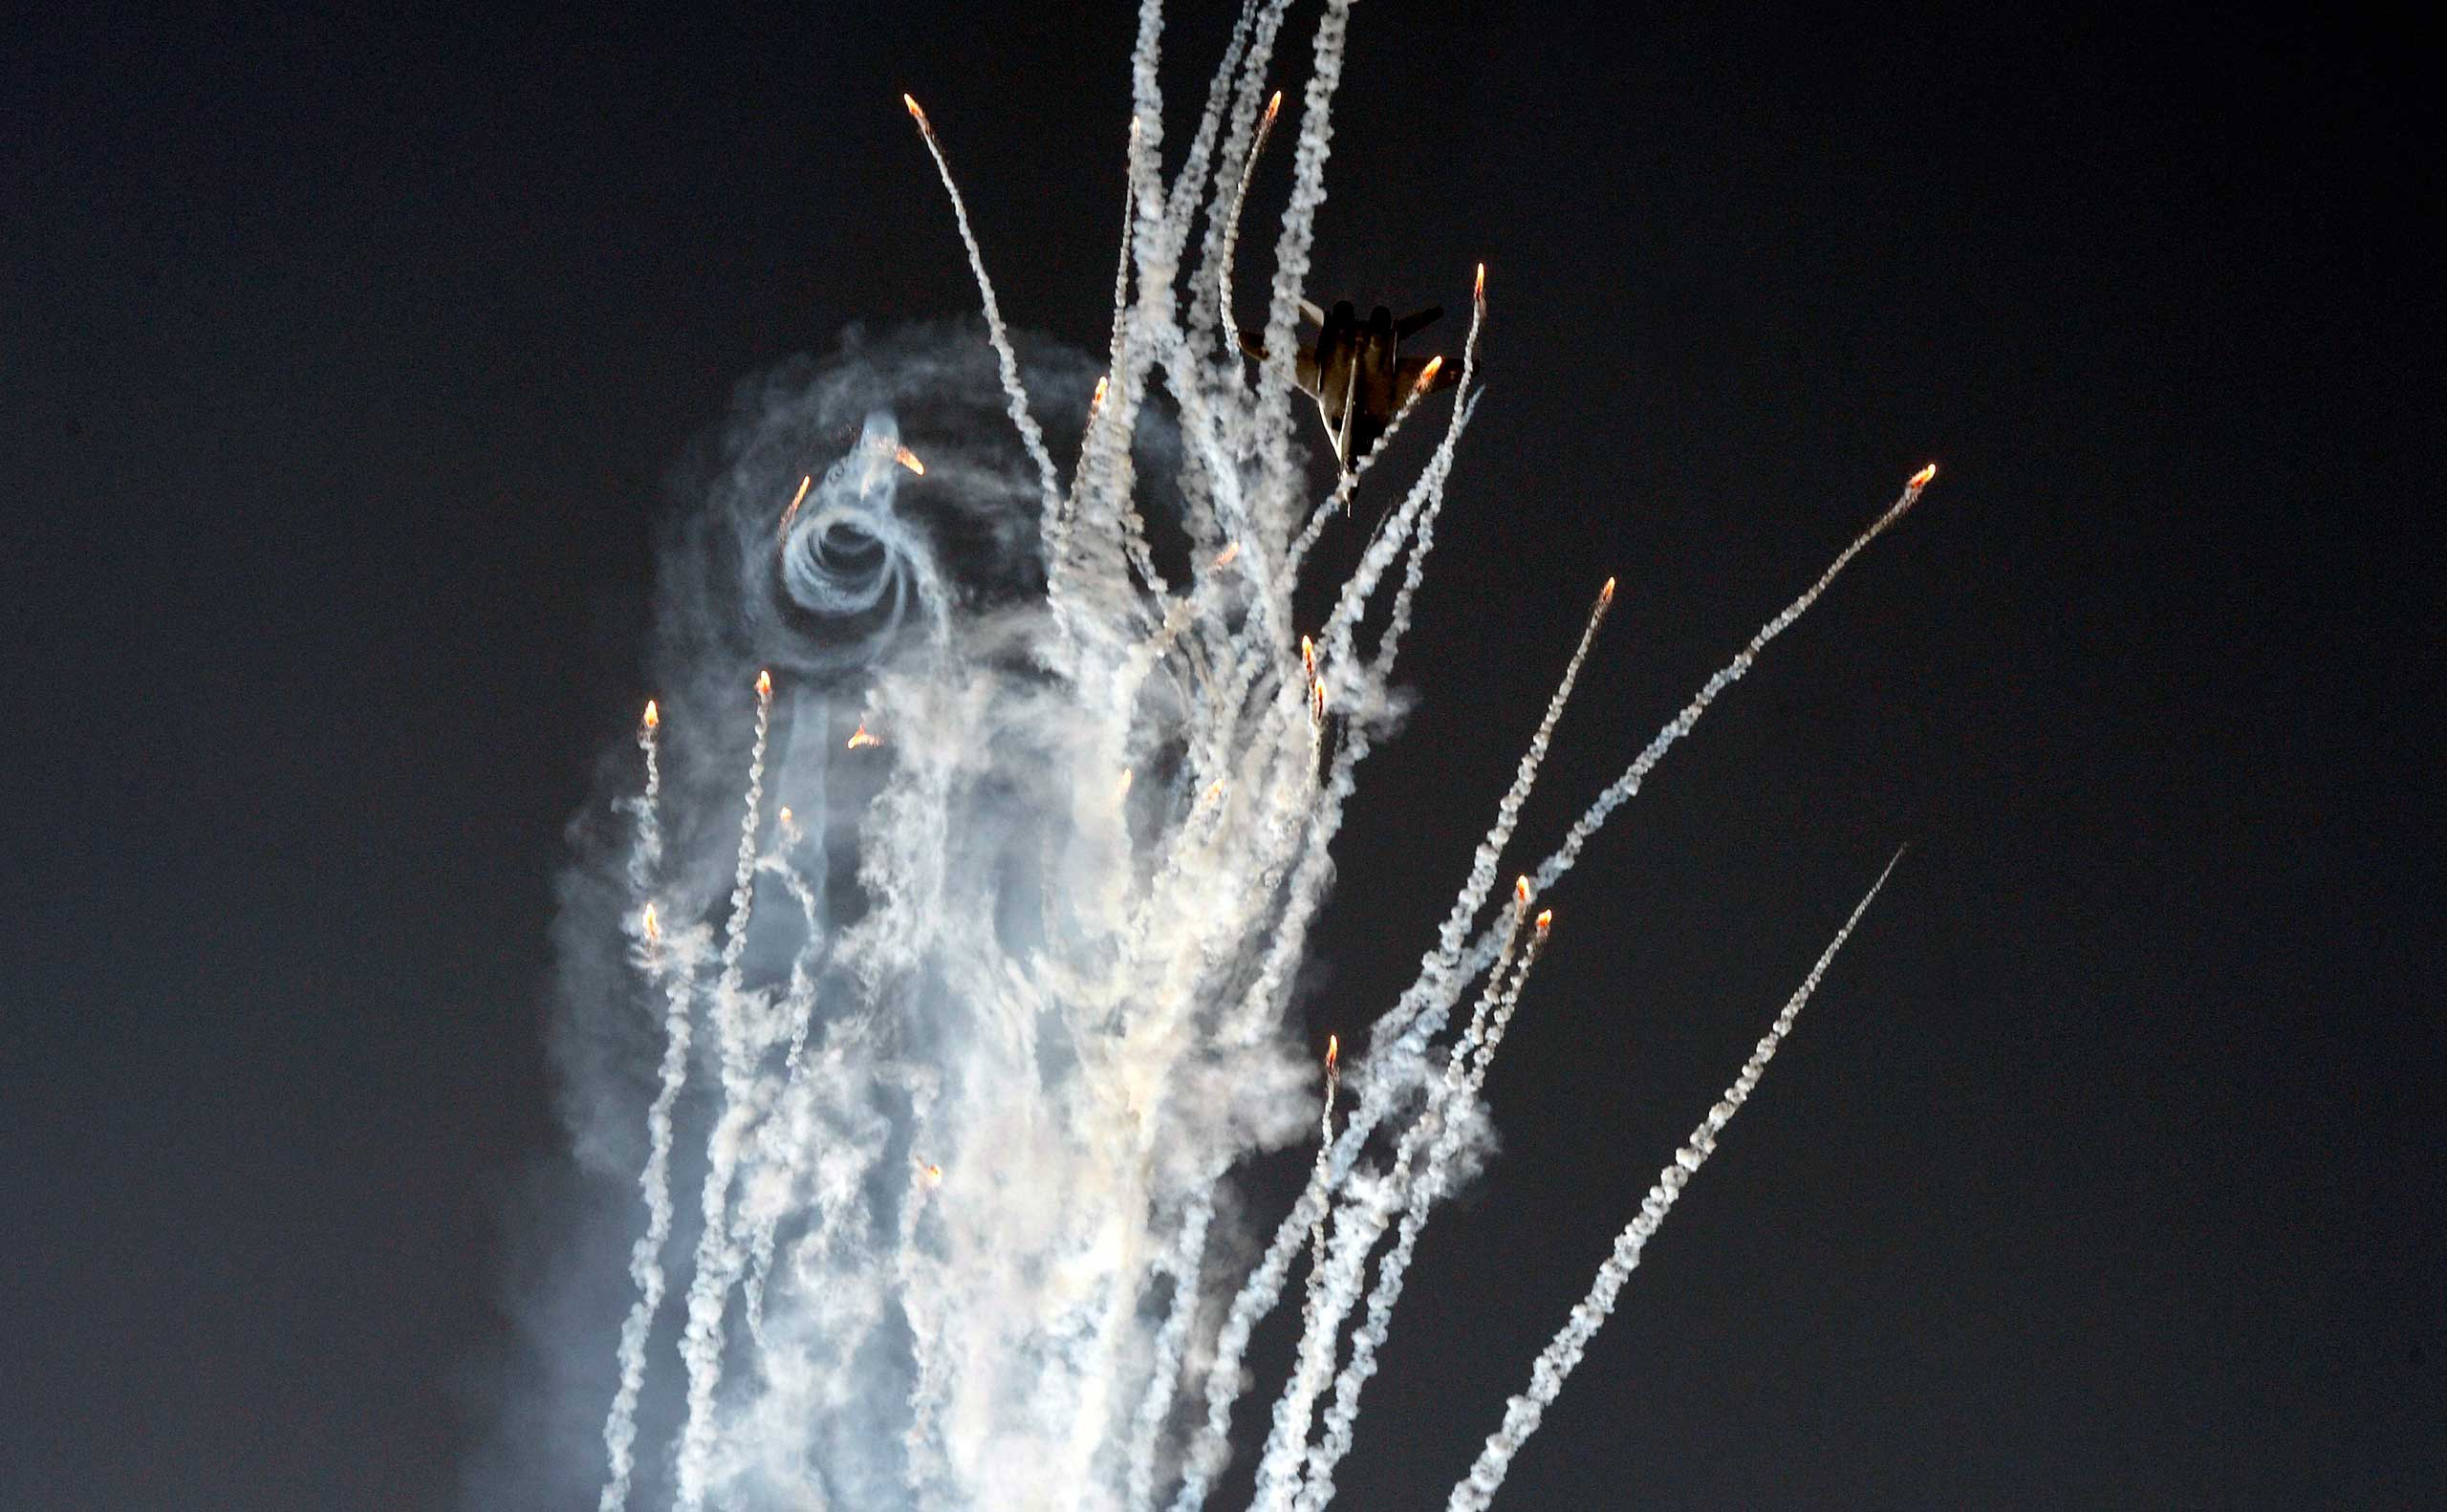 September 2014. A MIG 29 jet fighter aircraft carries out a demonstration during NATO Days in Ostrava, Czech Republic.